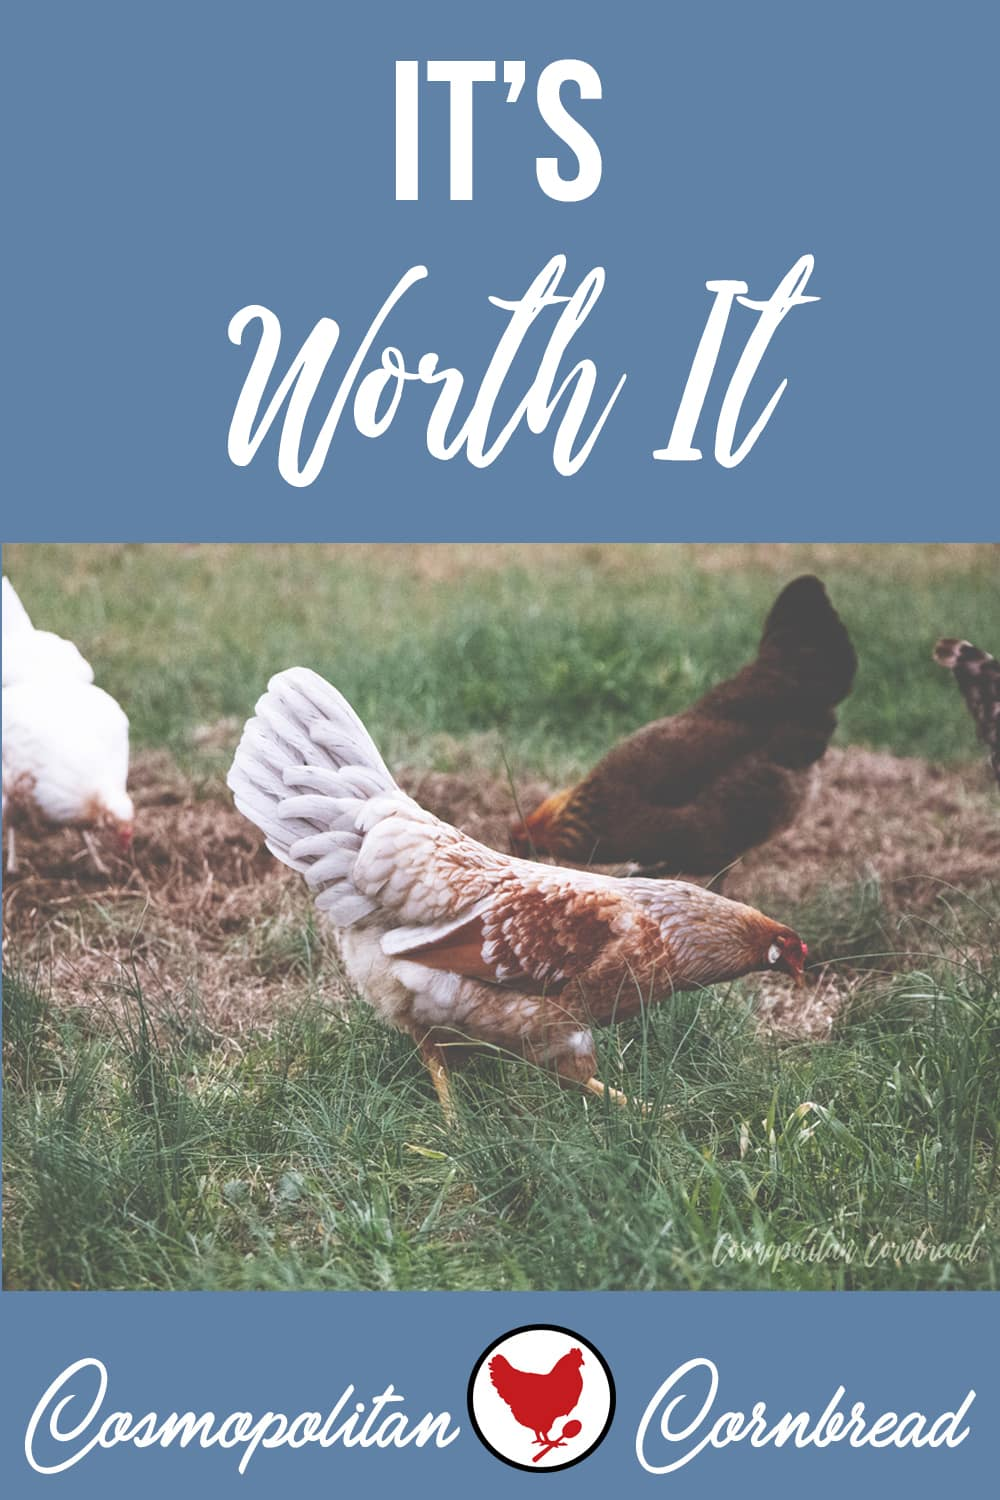 Even when you have to deal with losses - predators, illness, and more...it is still worth it to live this homesteading life.